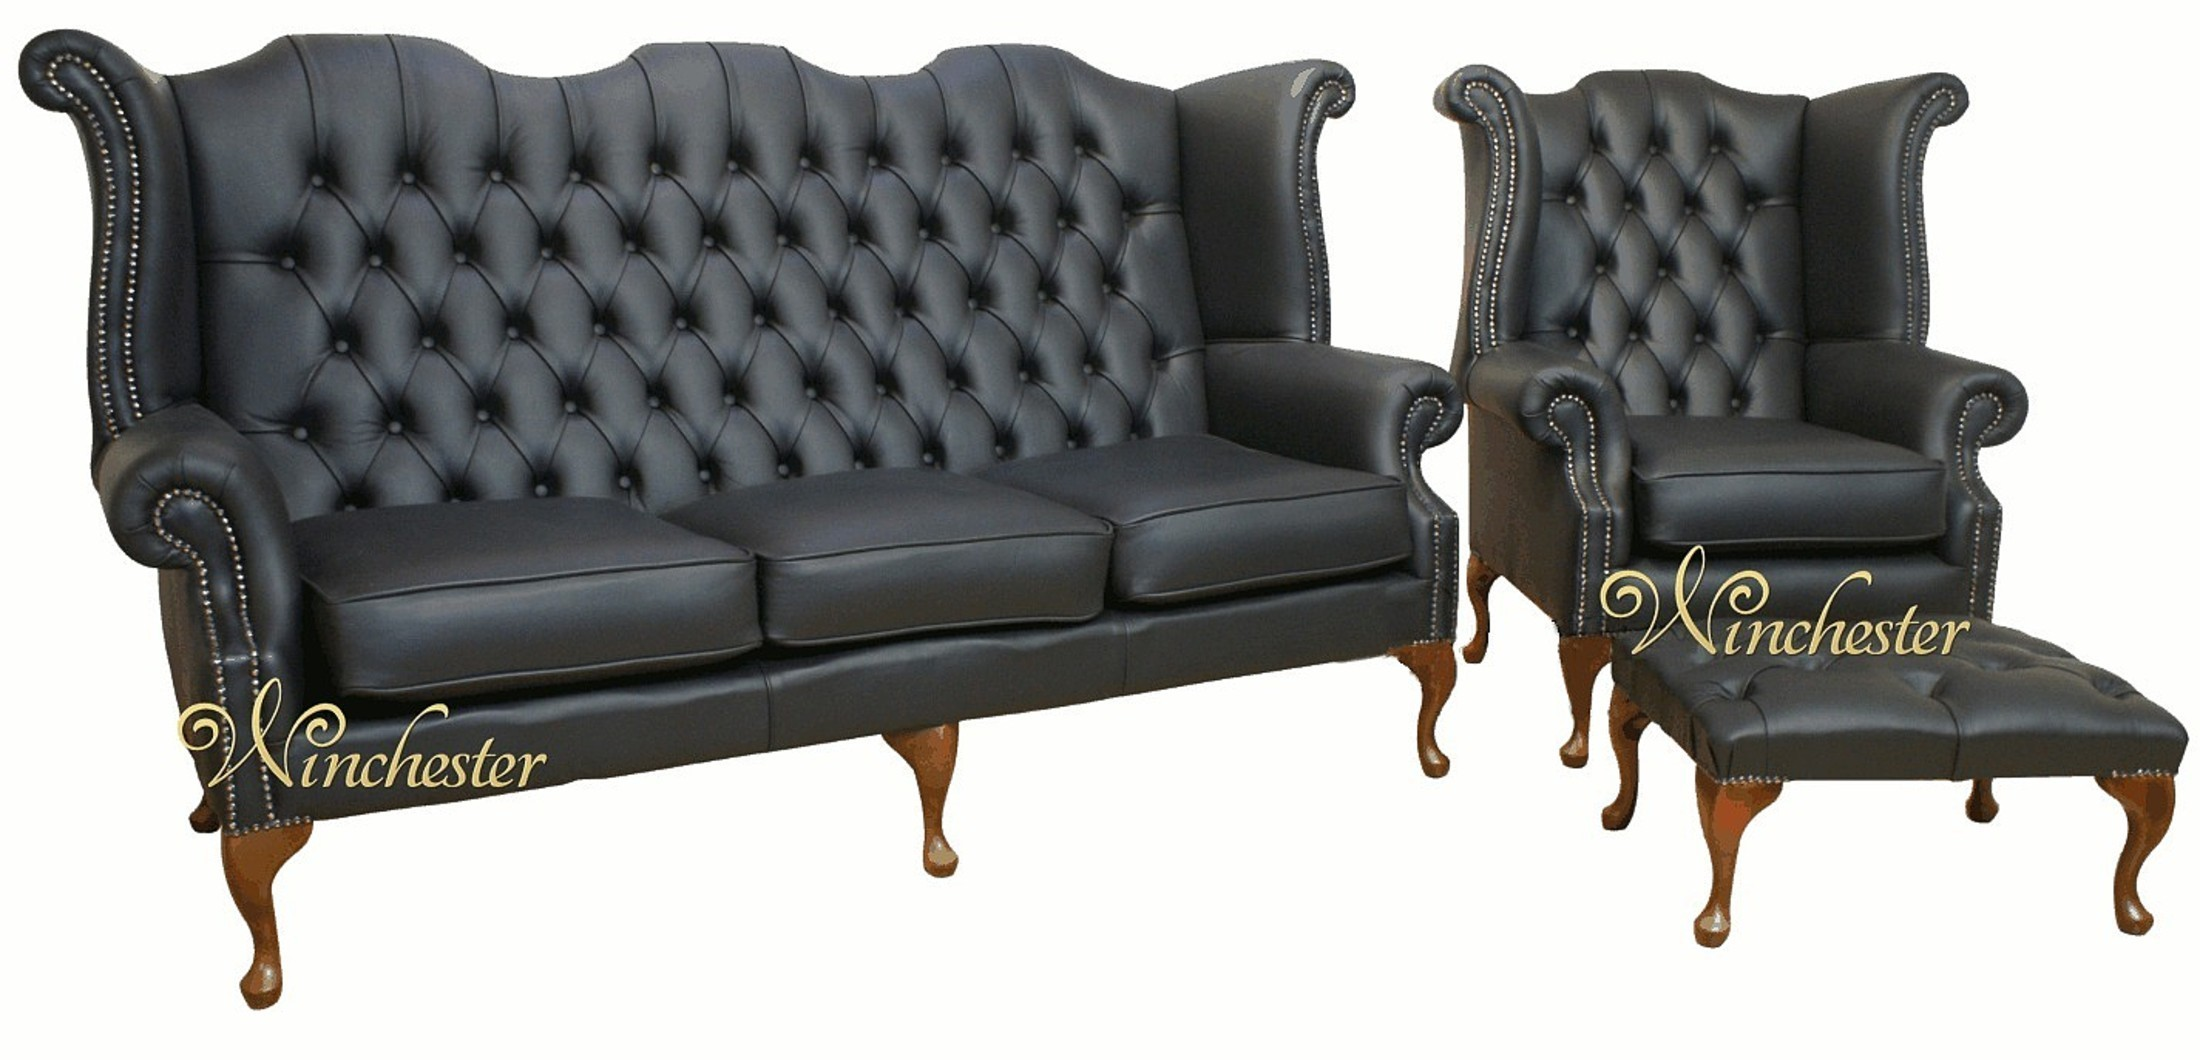 3 seater black leather sofa raymour flanigan chesterfield + queen anne high back wing chair uk ...